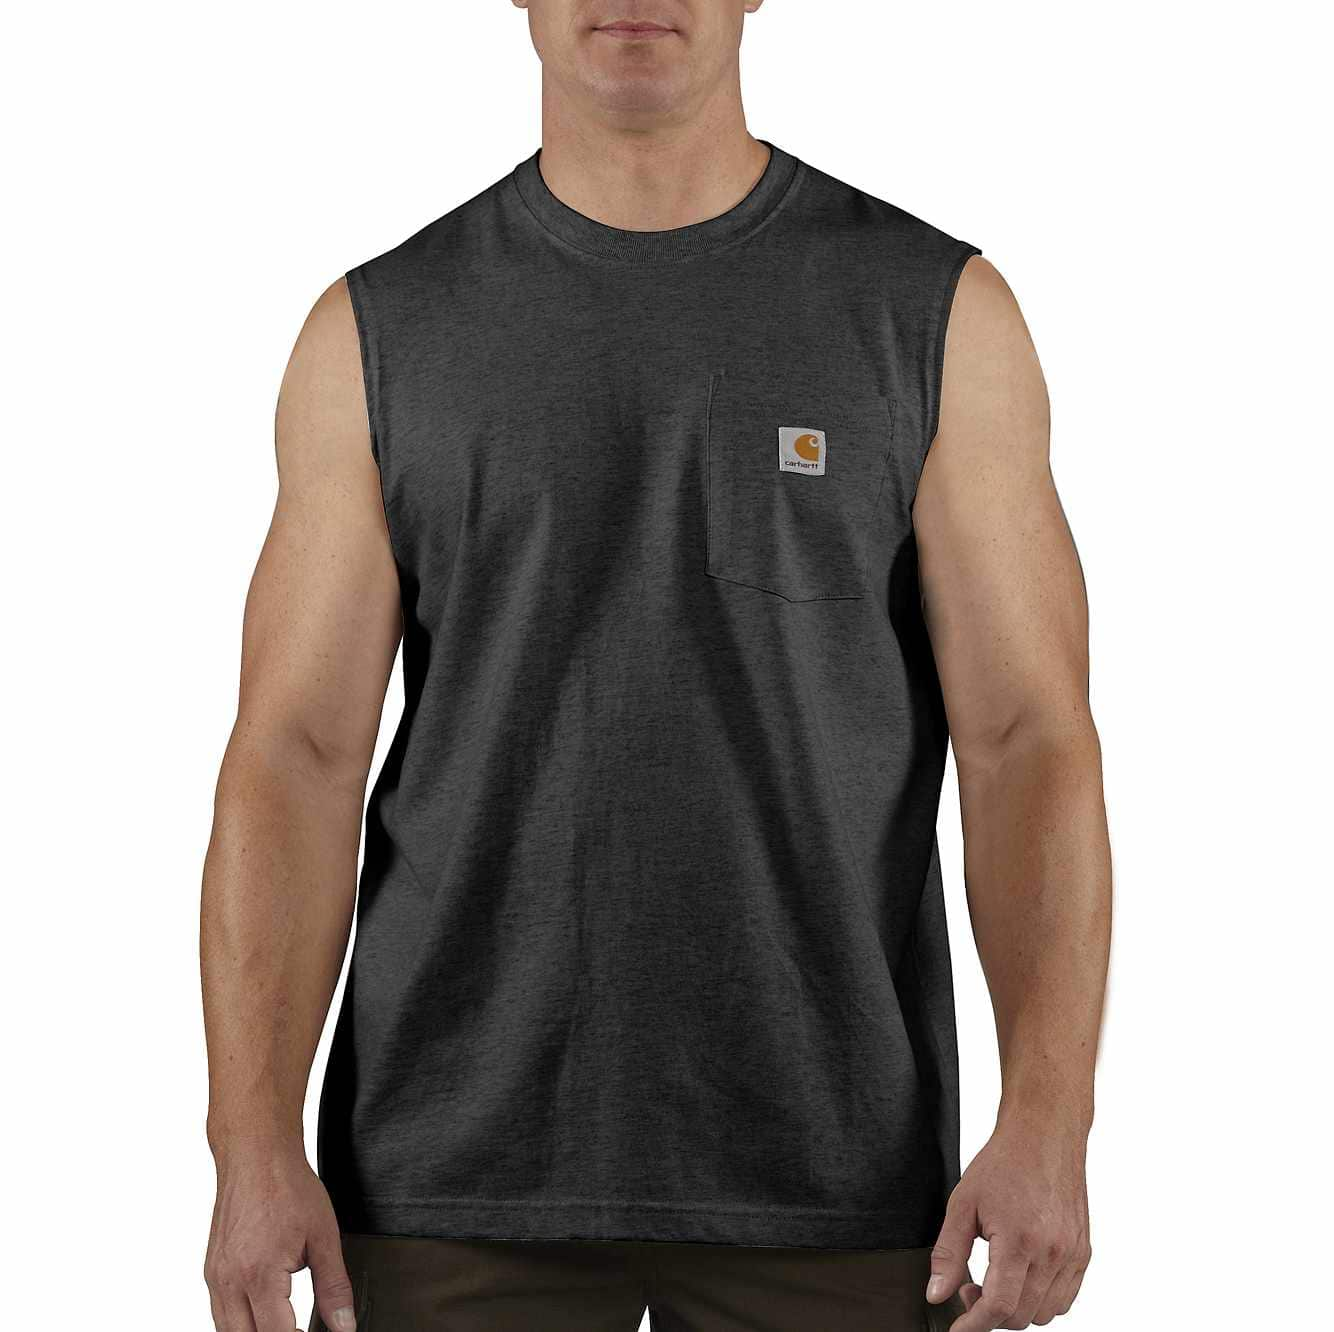 Picture of Workwear Pocket Sleeveless T-Shirt in Black